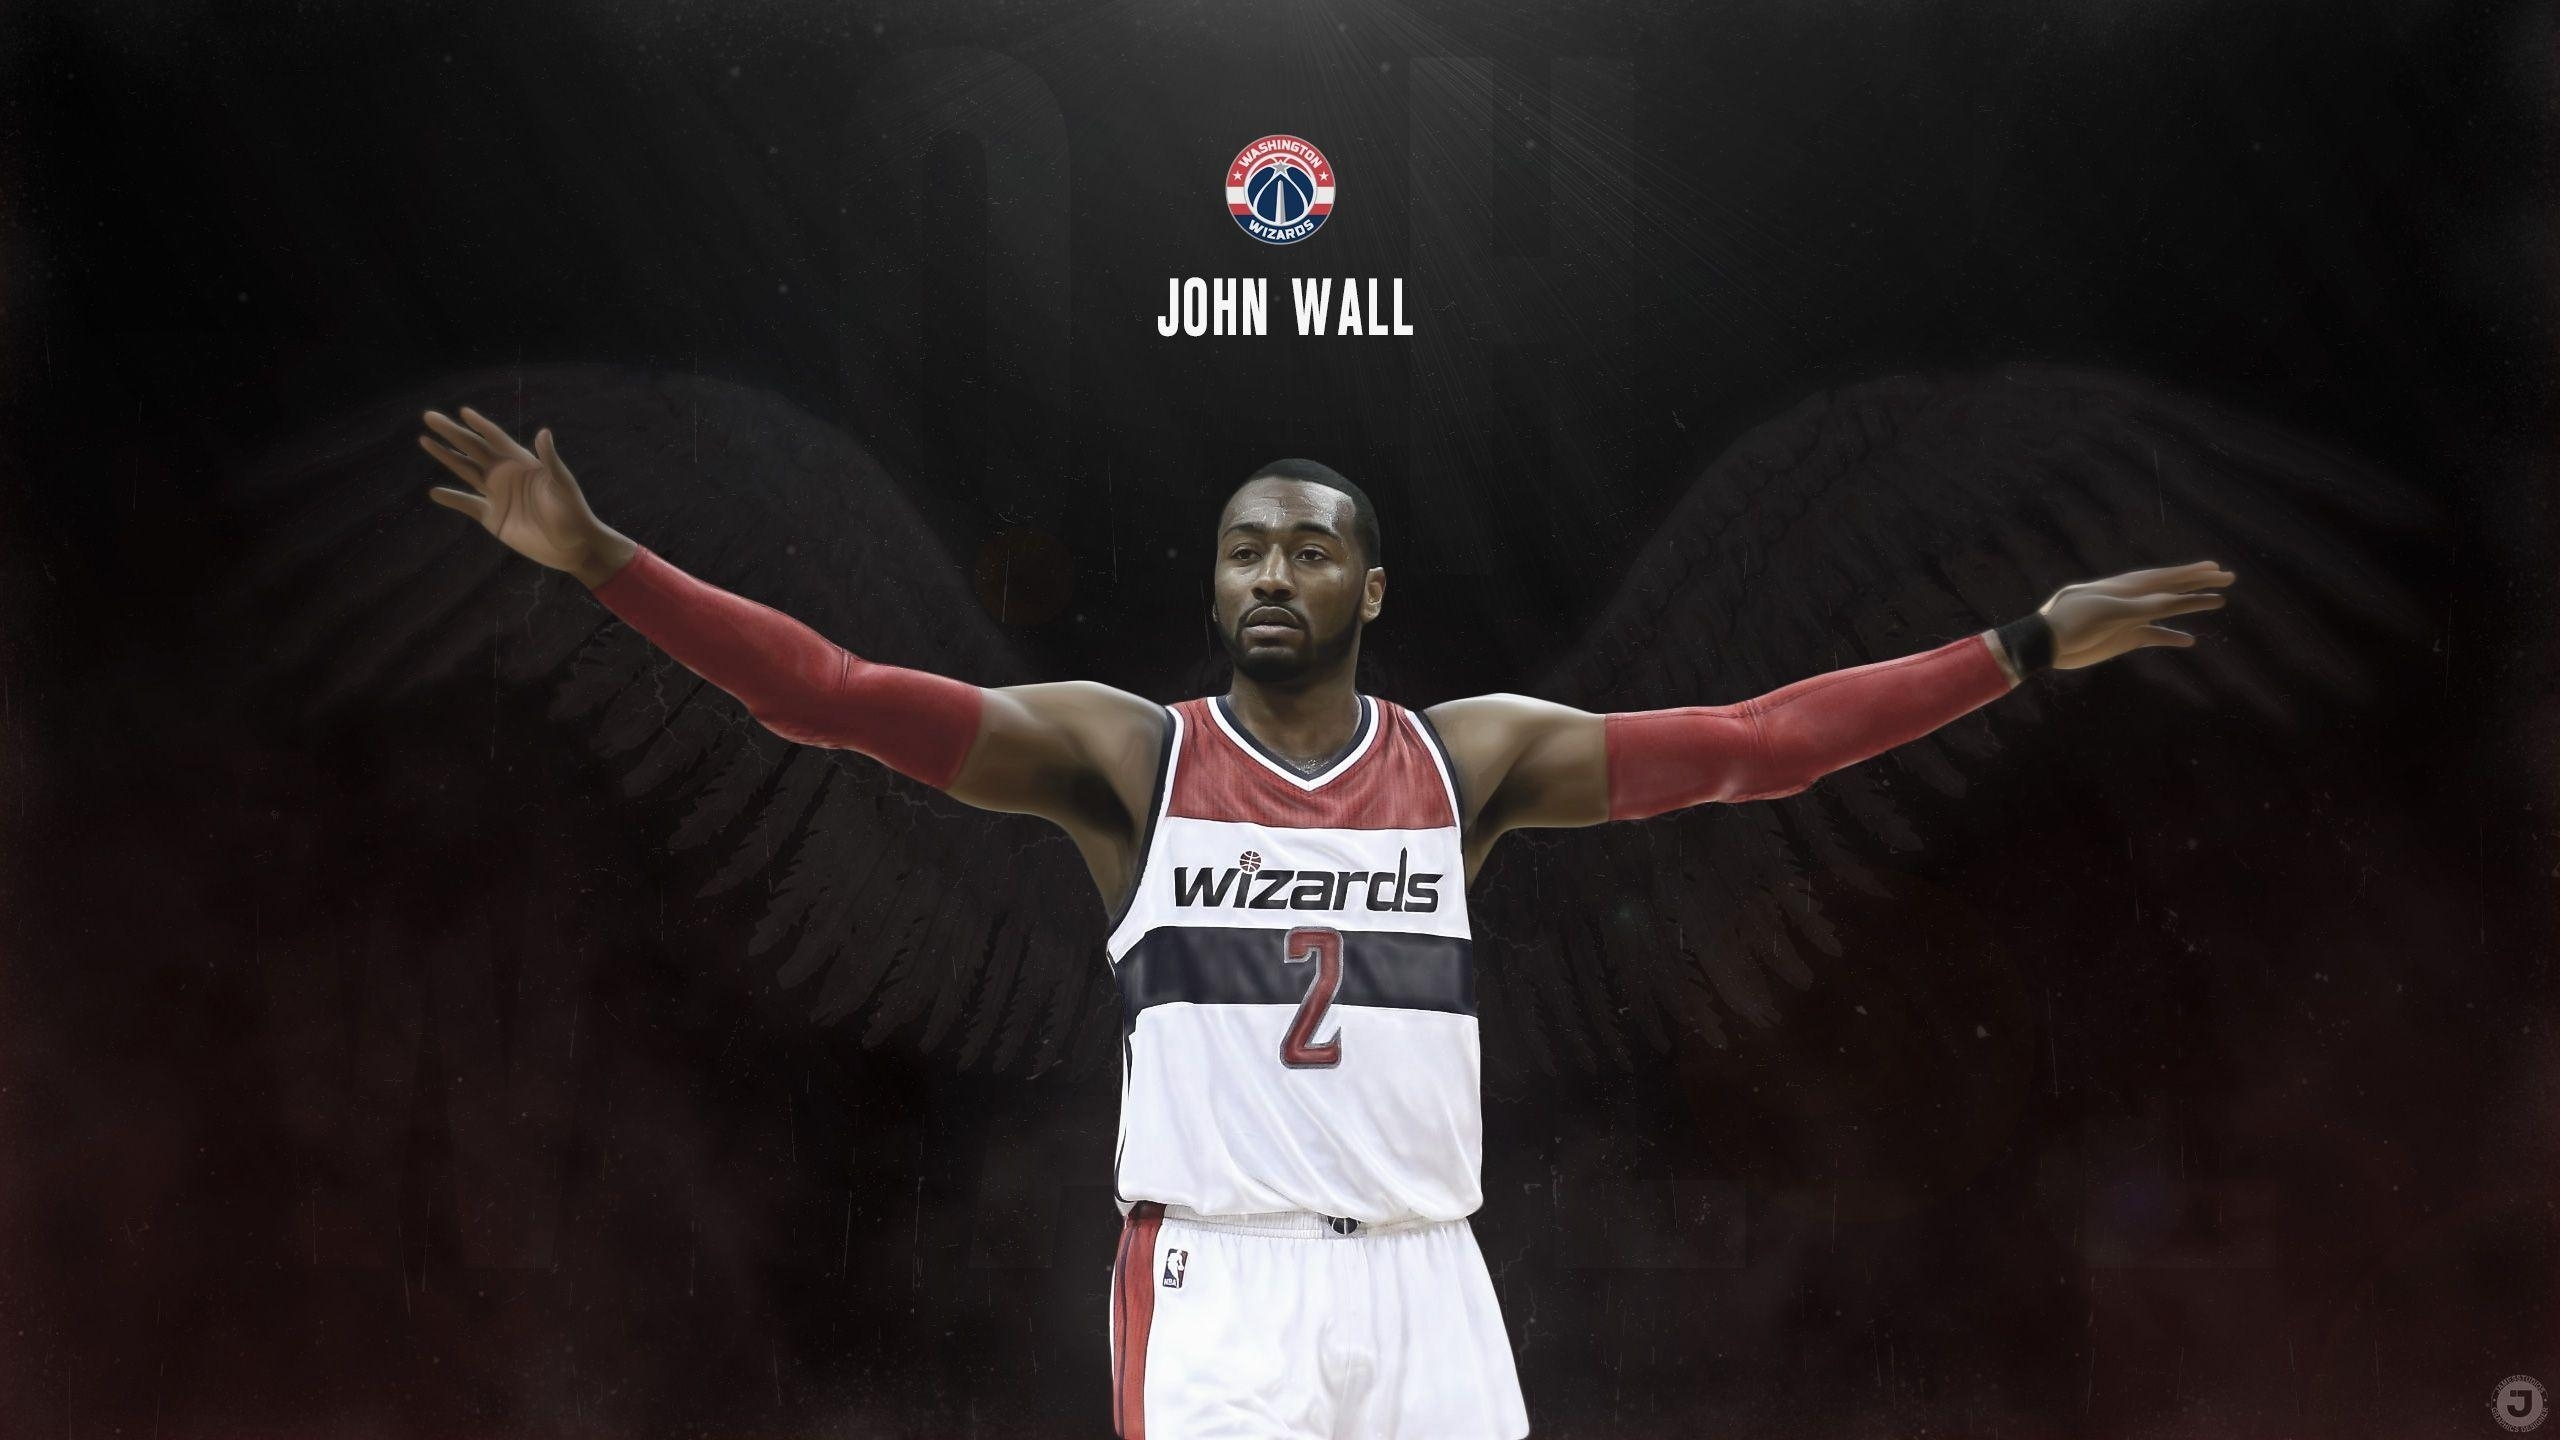 john wall wallpapers - wallpaper cave